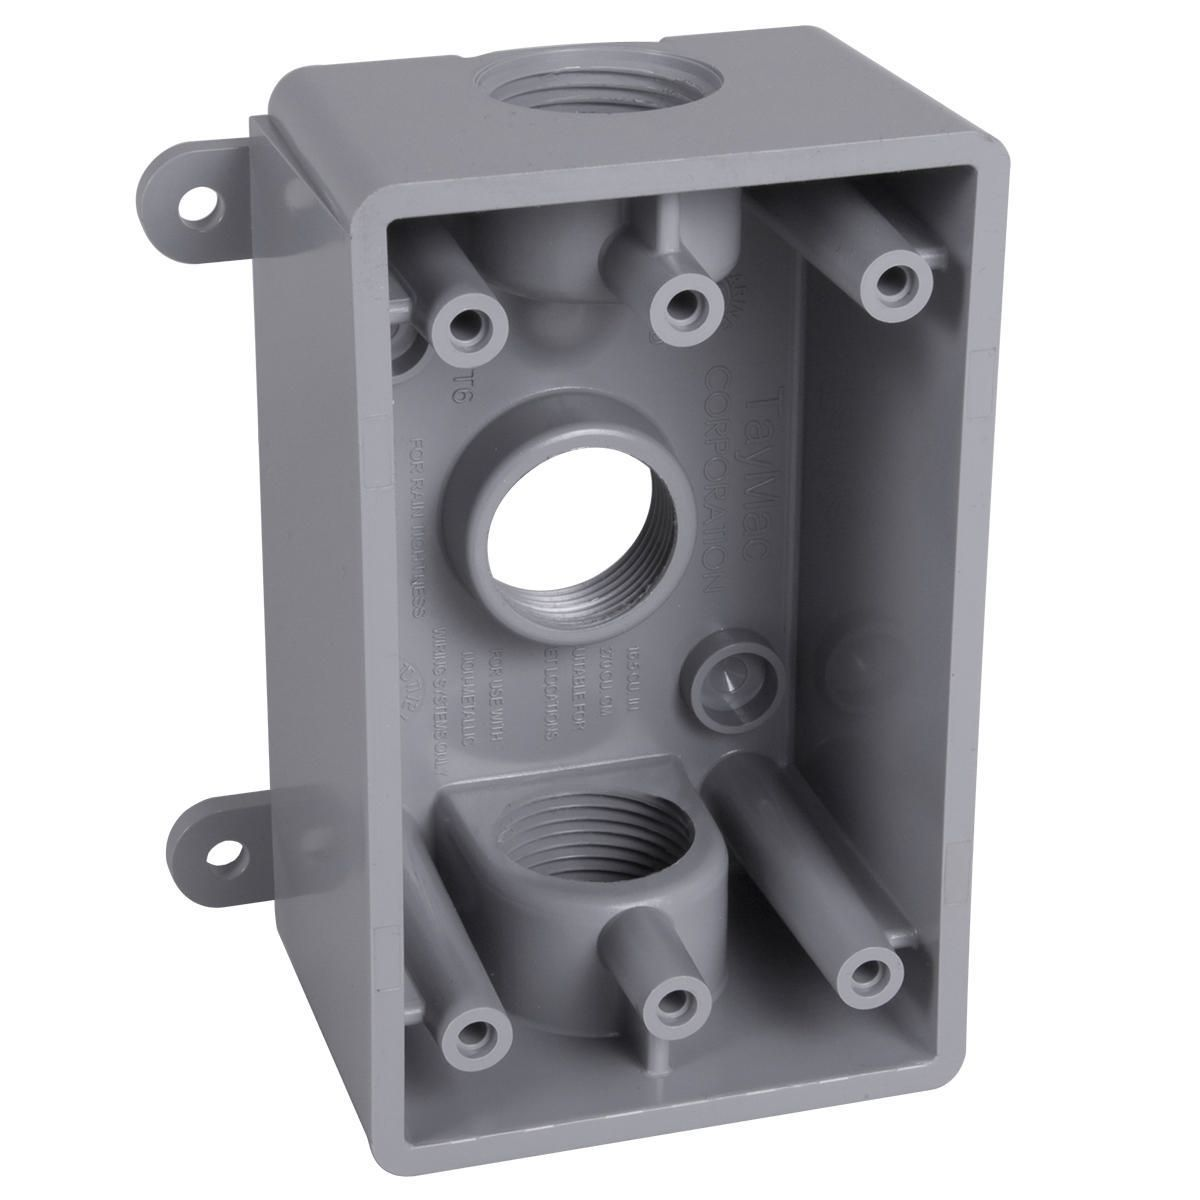 Hubbell-Raco PSB37550GY BELL Weatherproof Outlet Box